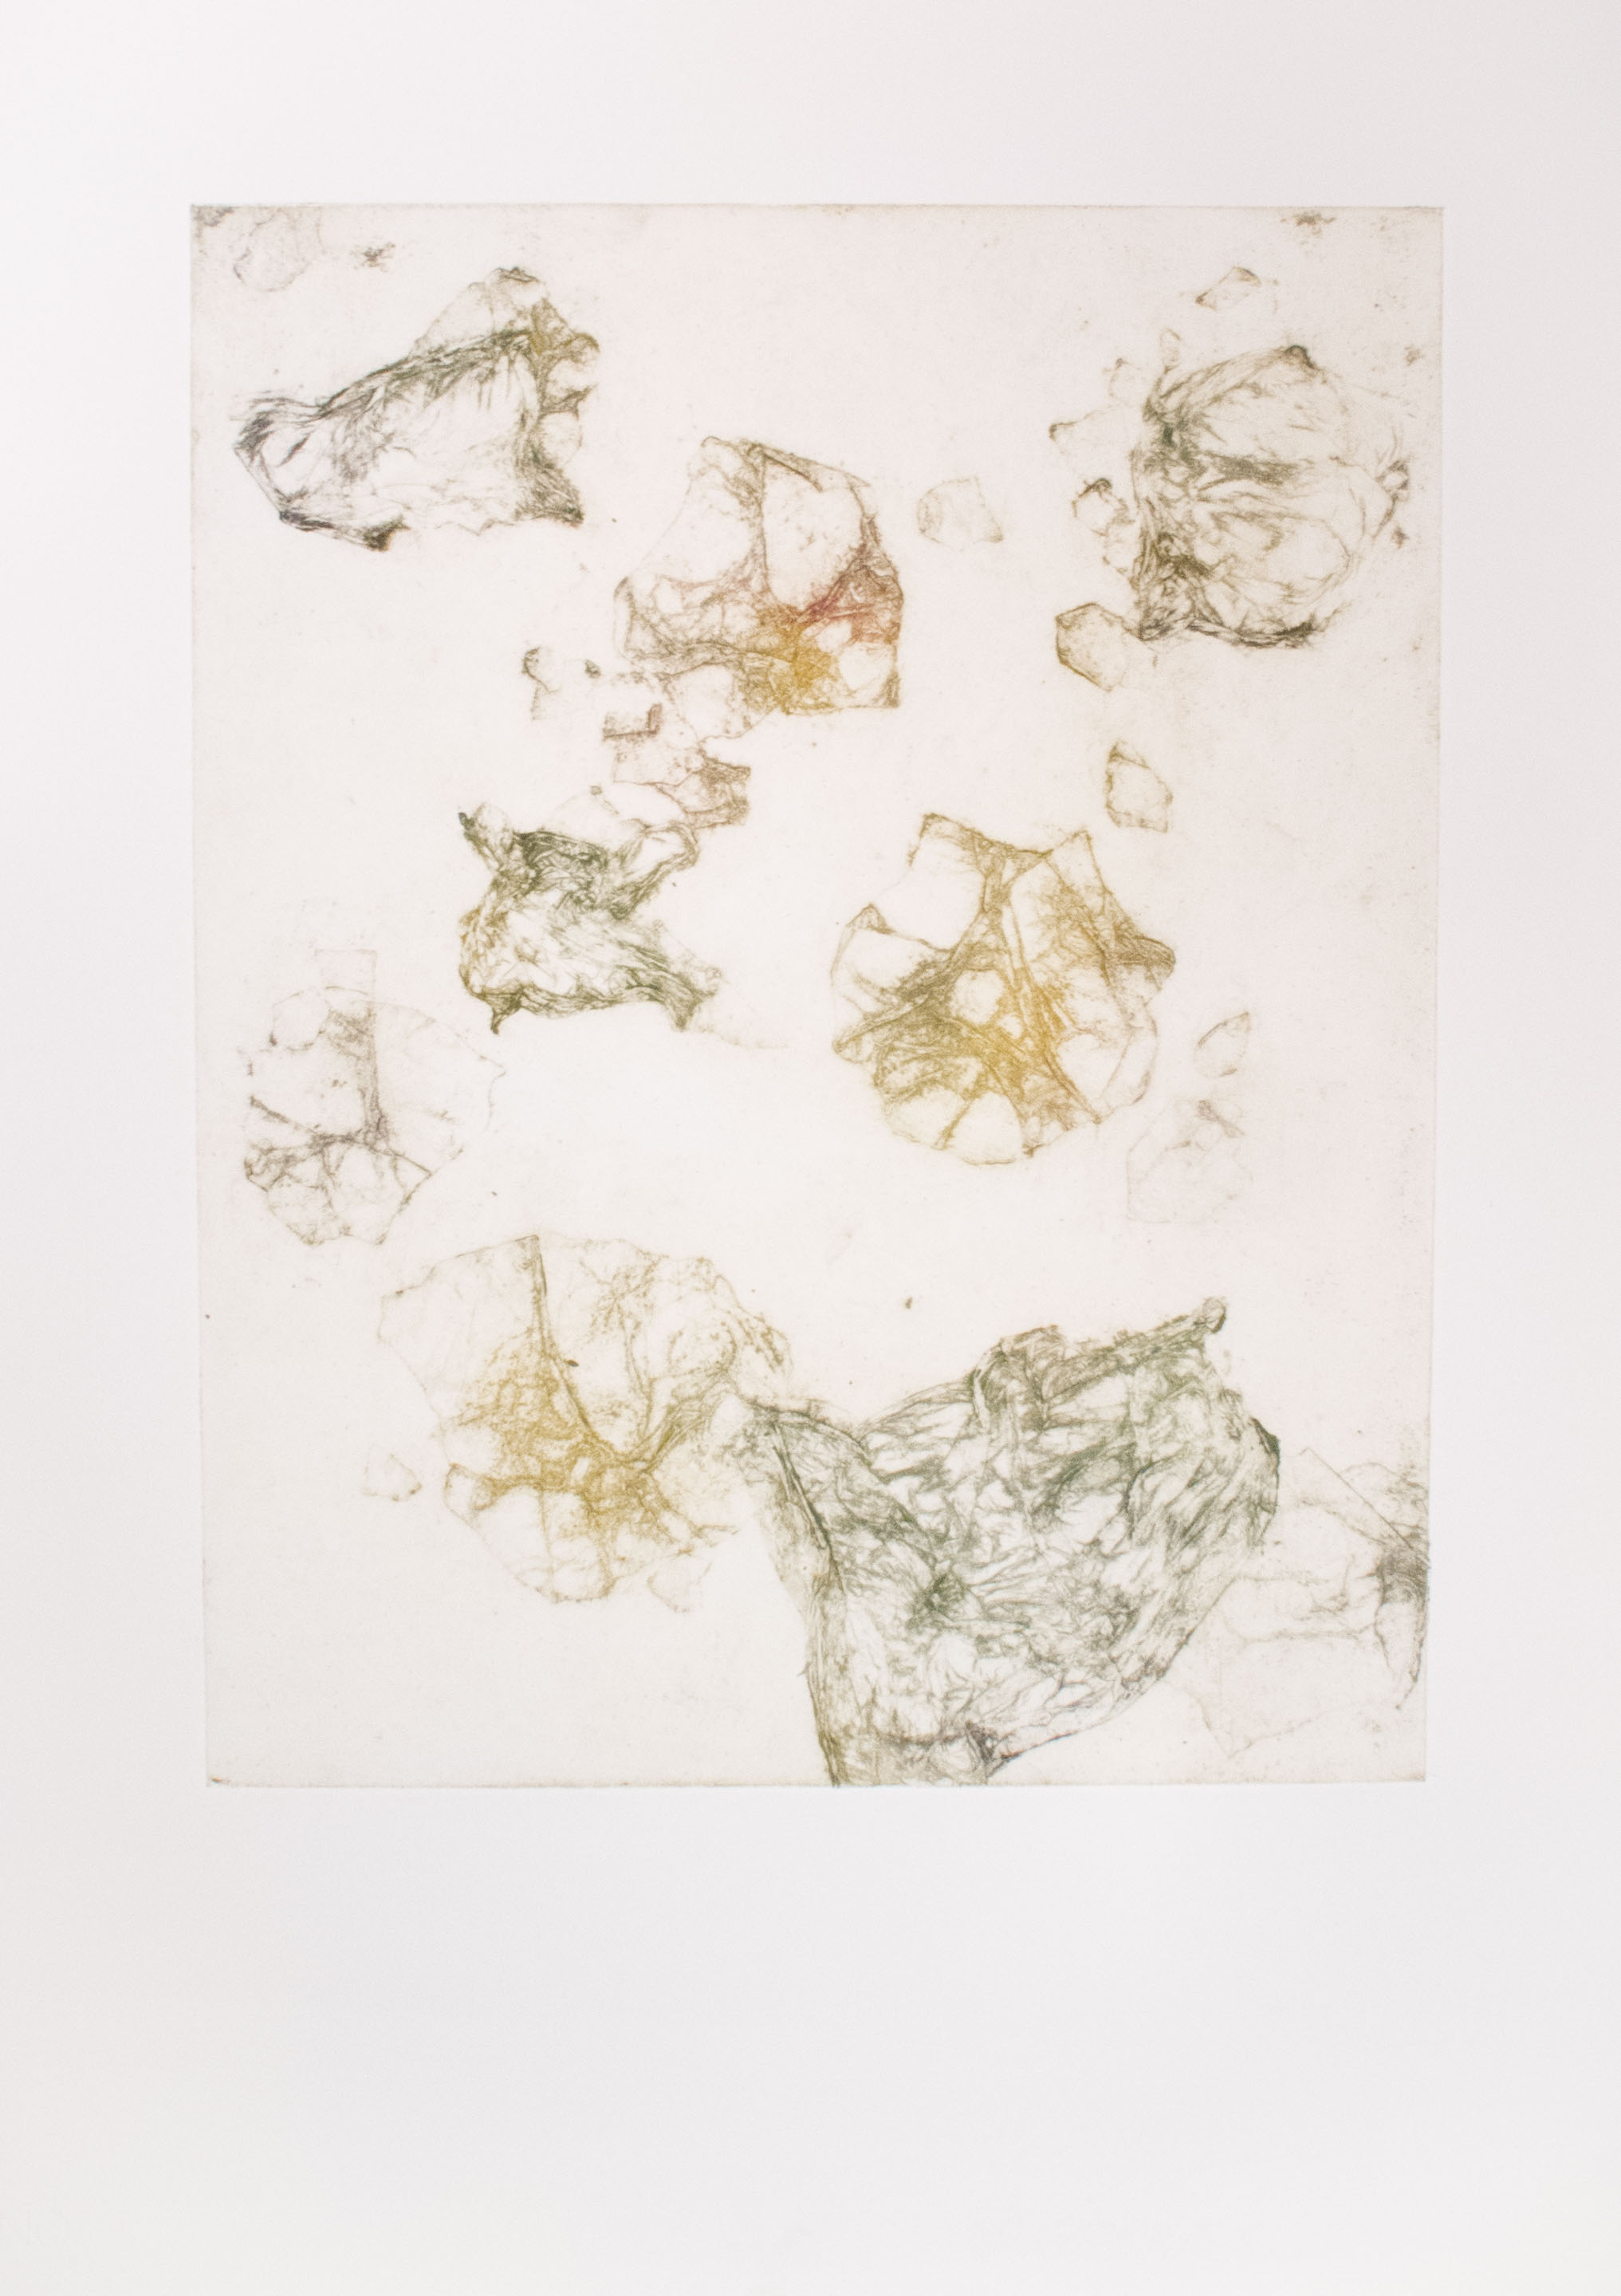 Iron, Flint, and Bronze collagraph monoprint 30 x 24 inches ASC 113G